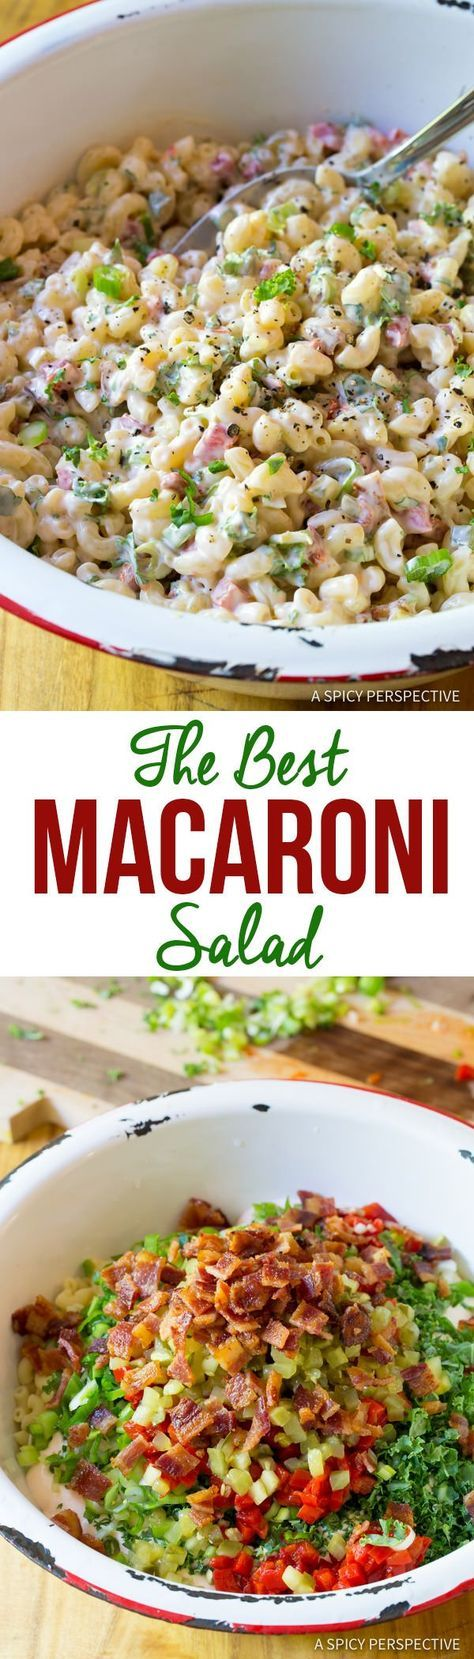 Truly The Best Macaroni Salad Recipe   ASpicyPerspective...